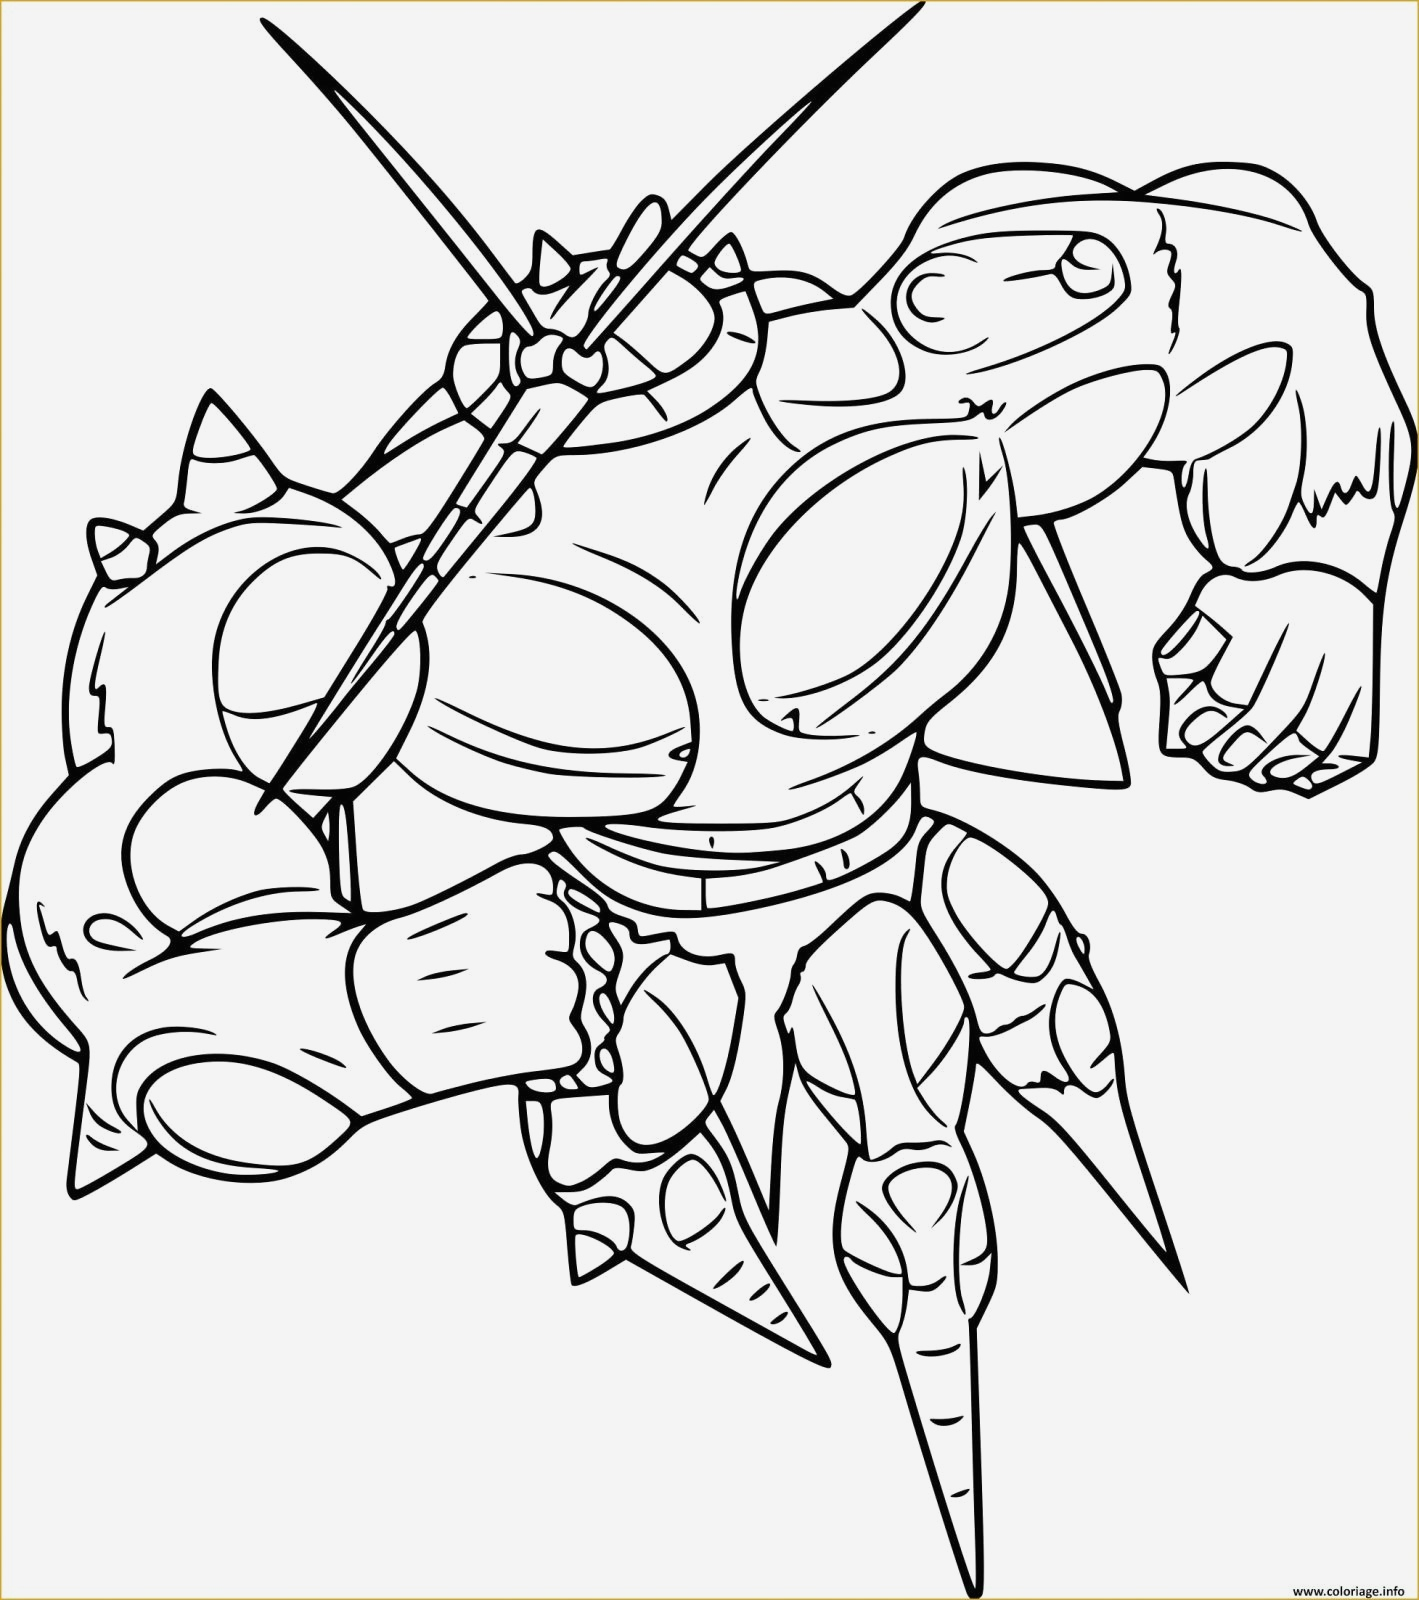 Coloriage Pokemon Evoli Inspirational Coloriage Pokemon A Ne Pas Imprimer Of Coloriage Pokemon Evoli